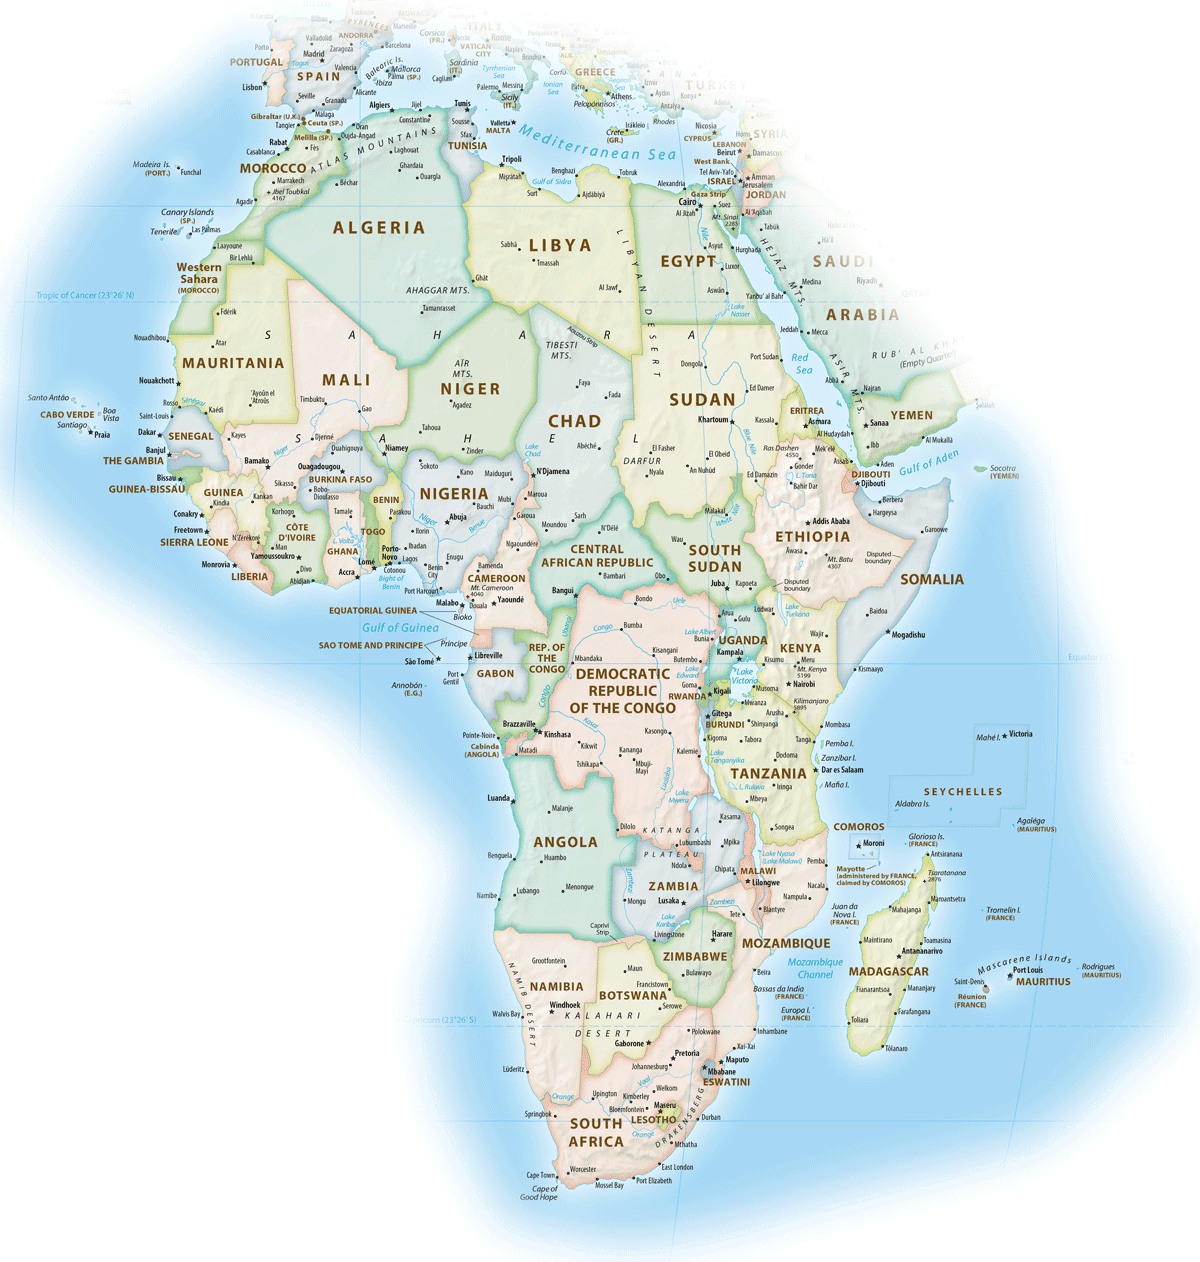 Map of the continent of Africa showing individual countries.